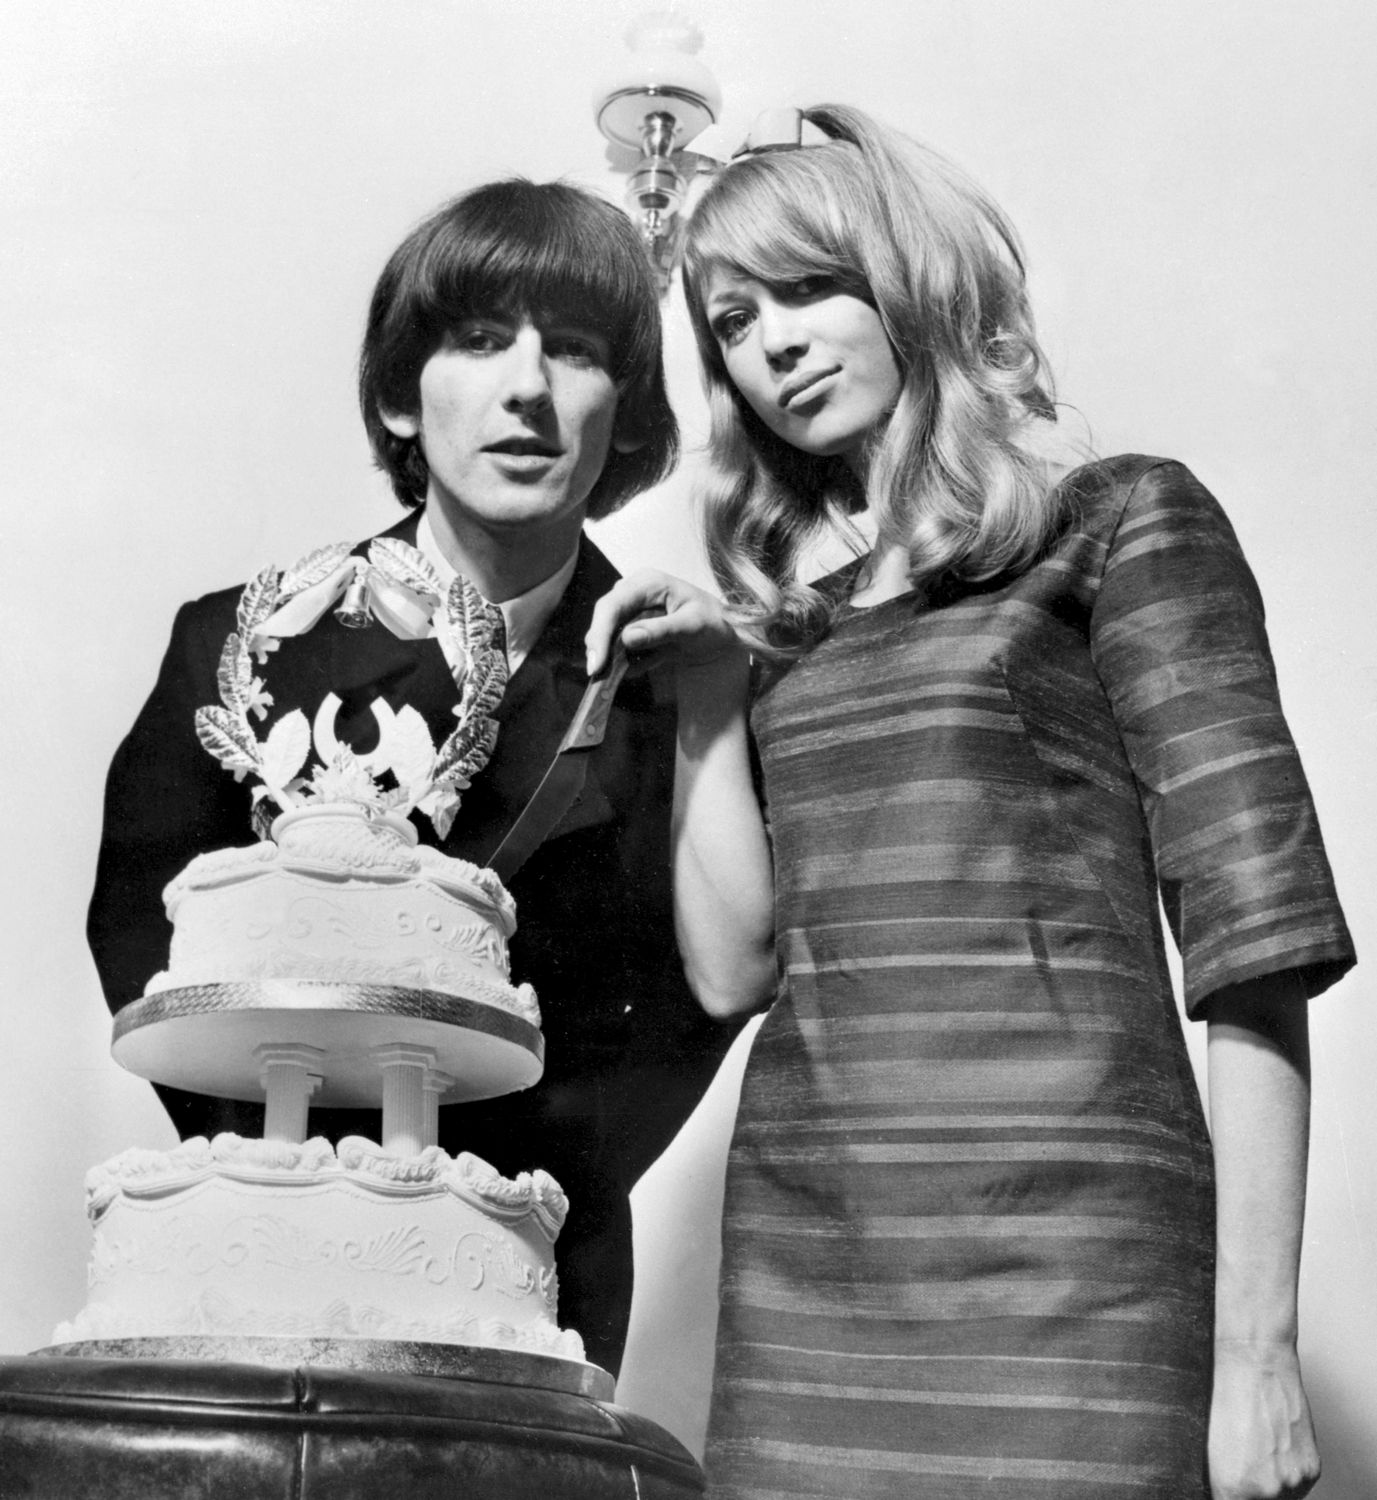 George Harrison 22 And Model Patti Boyd 21 Cut The Wedding Cake